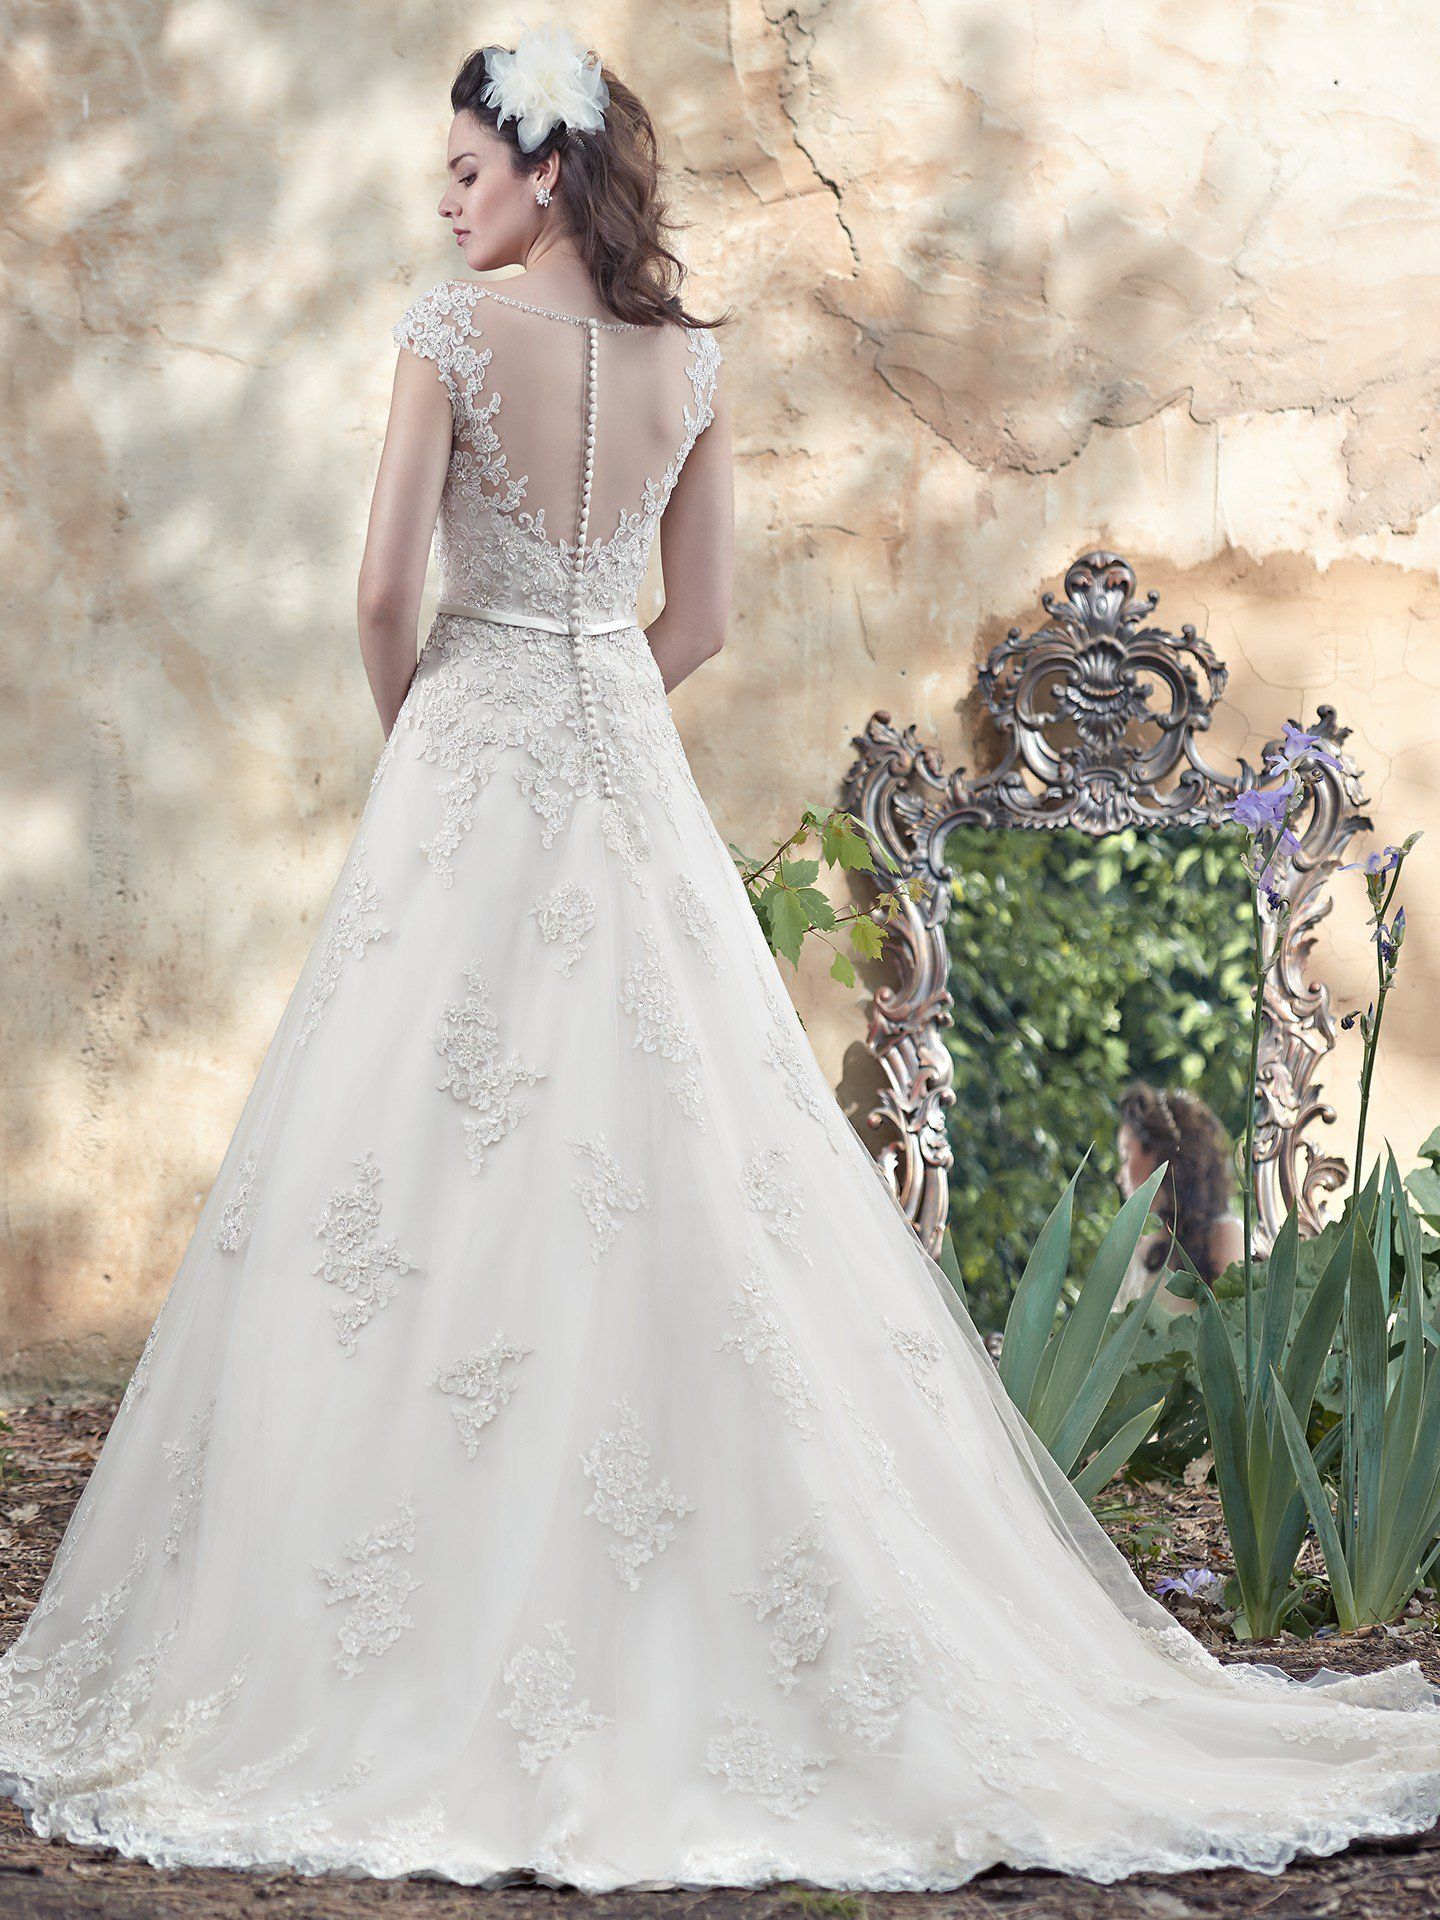 Fairytale ball gown wedding dresses  Maggie Sottero Wedding Dresses  Maggie sottero Wedding dress and